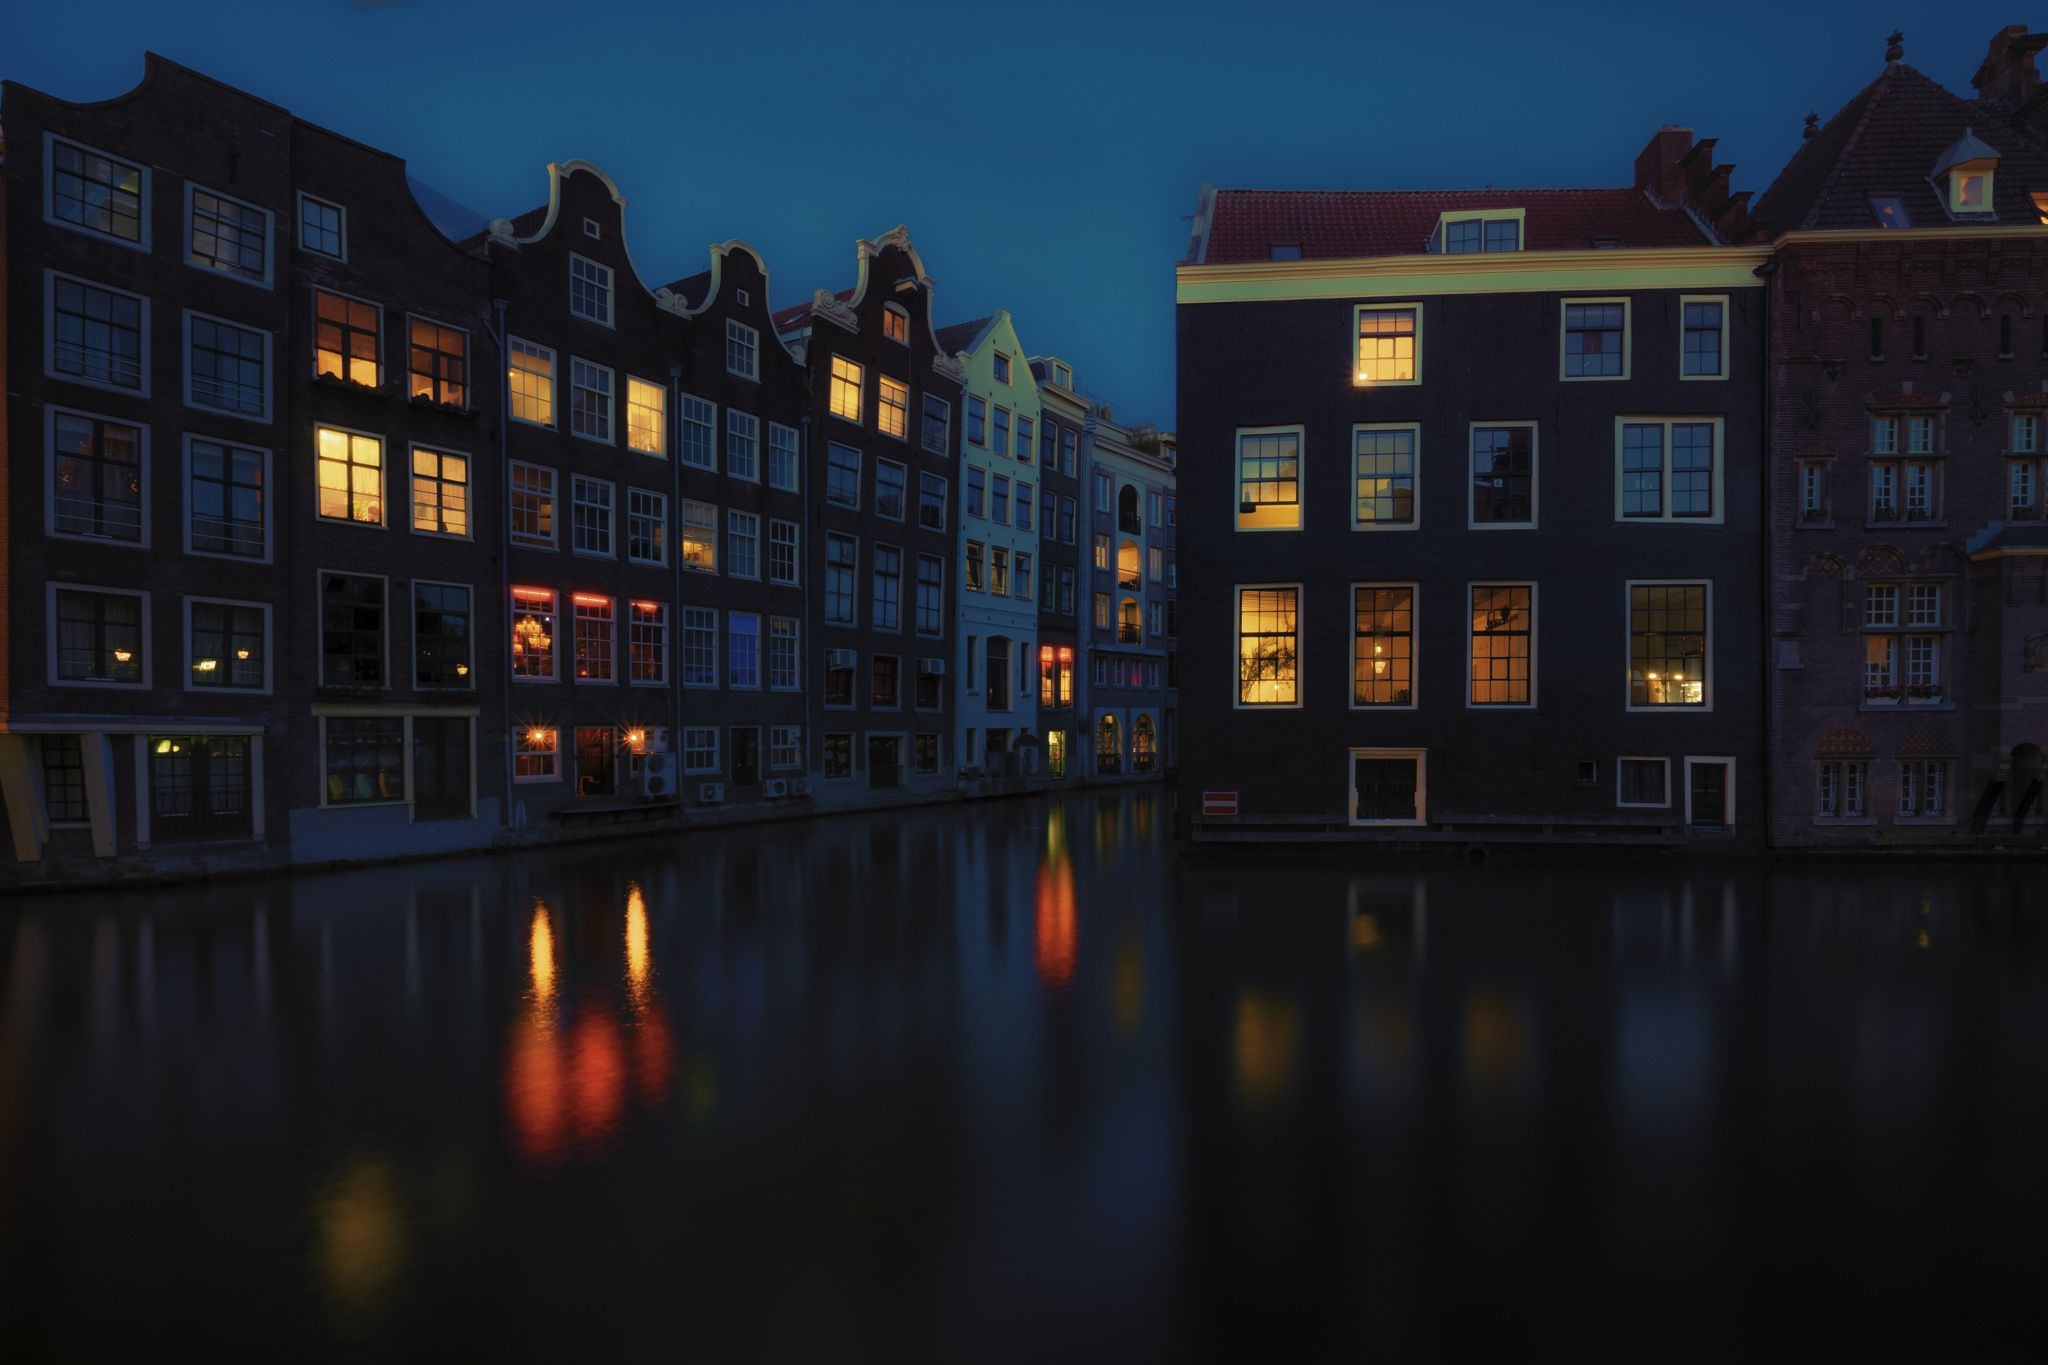 Lights on! Amsterdam. by Remo Scarfò on 500px